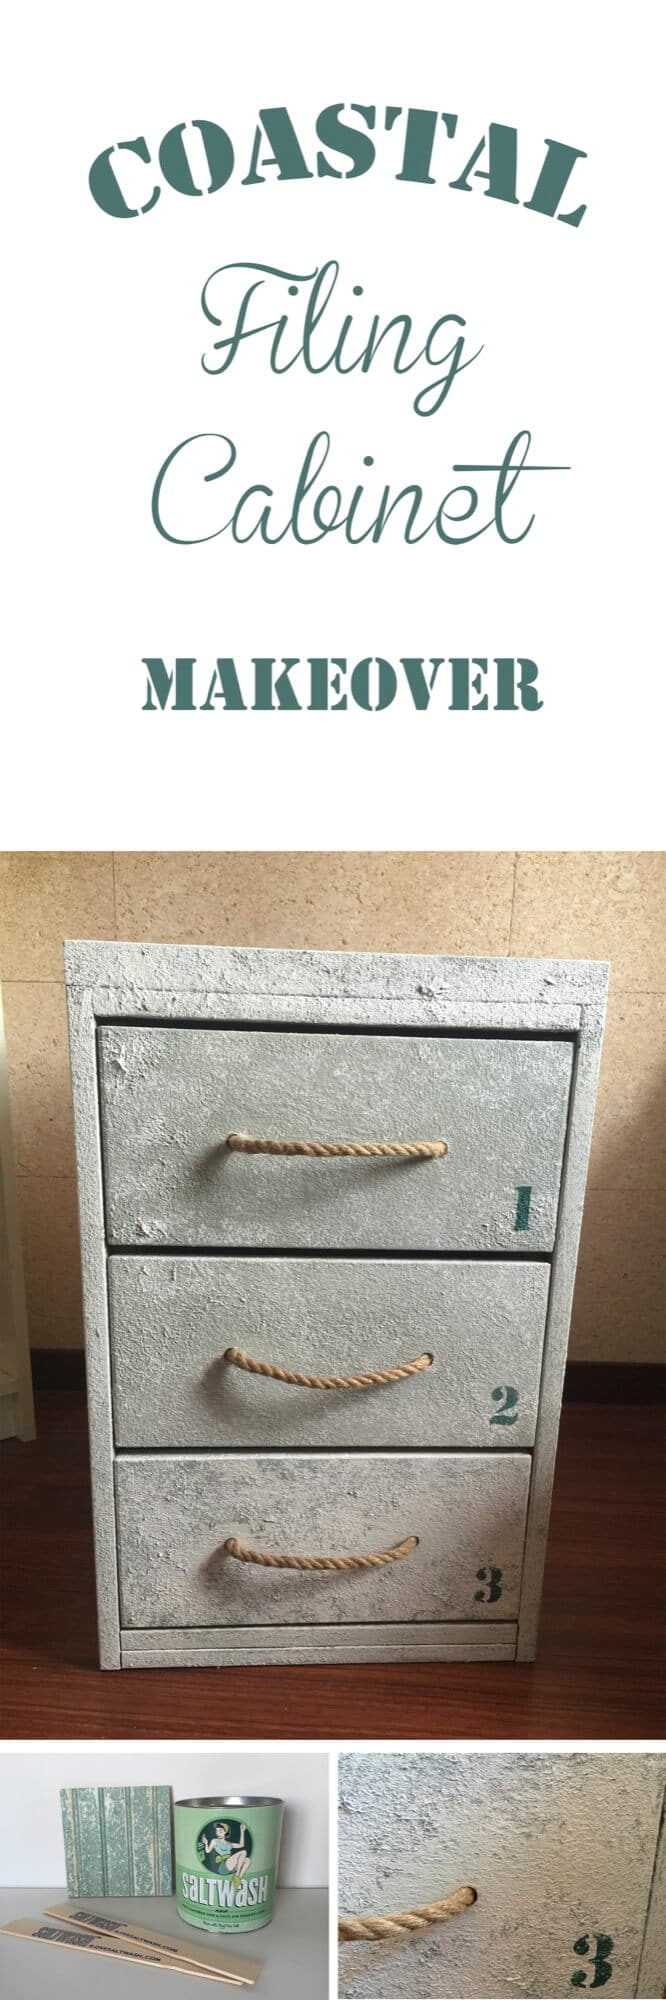 Coastal filing cabinet makeover using Saltwash for a coastal and weathered look with rope as handles